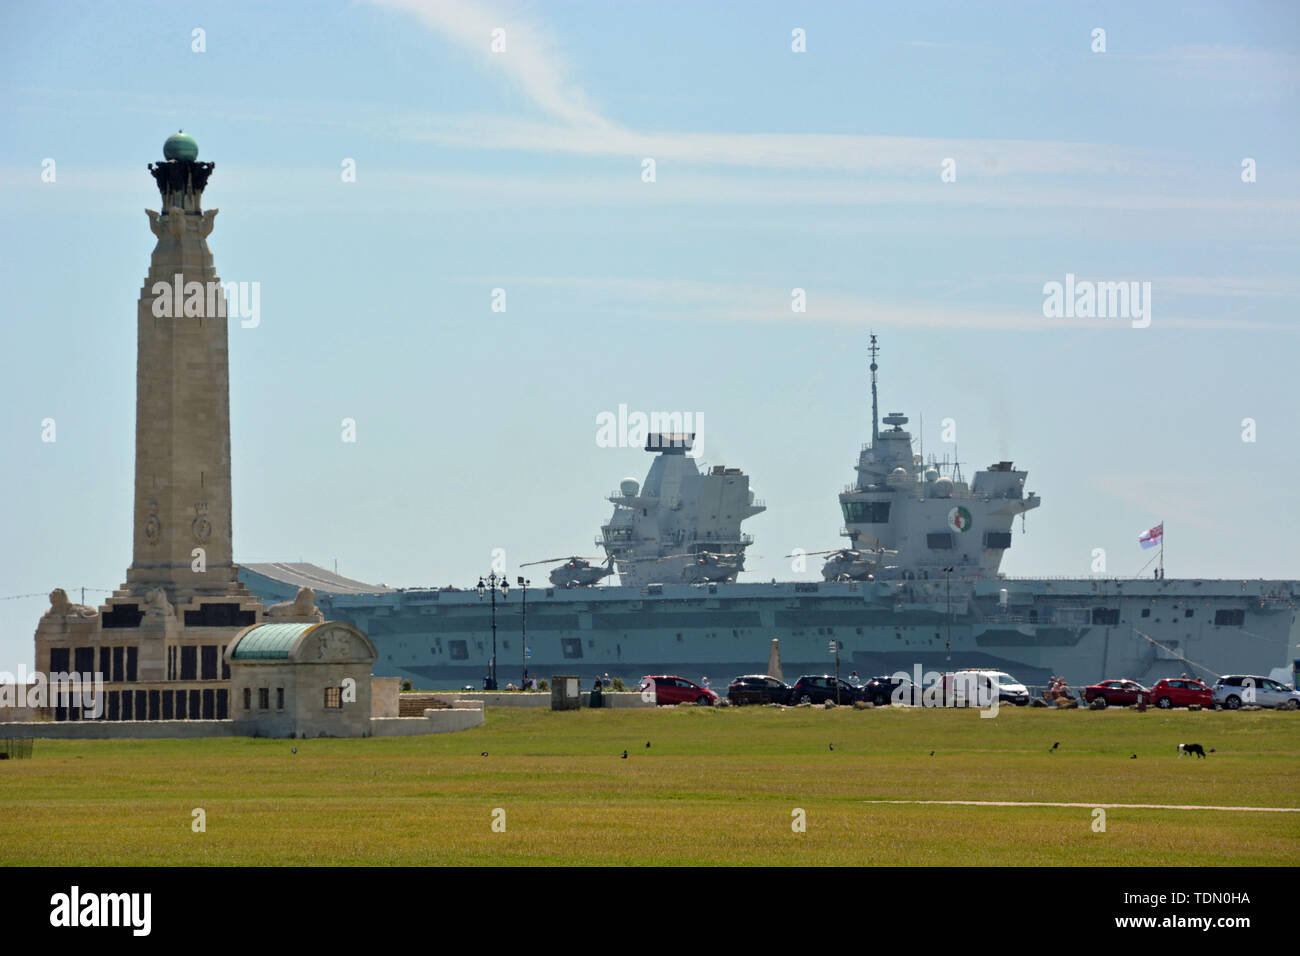 Royal Navy aircraft carrier HMS Queen Elizabeth sails past the Portsmouth Naval Memorial on Southsea Common, after sailing out of Portsmouth Harbour for sea trials. Stock Photo